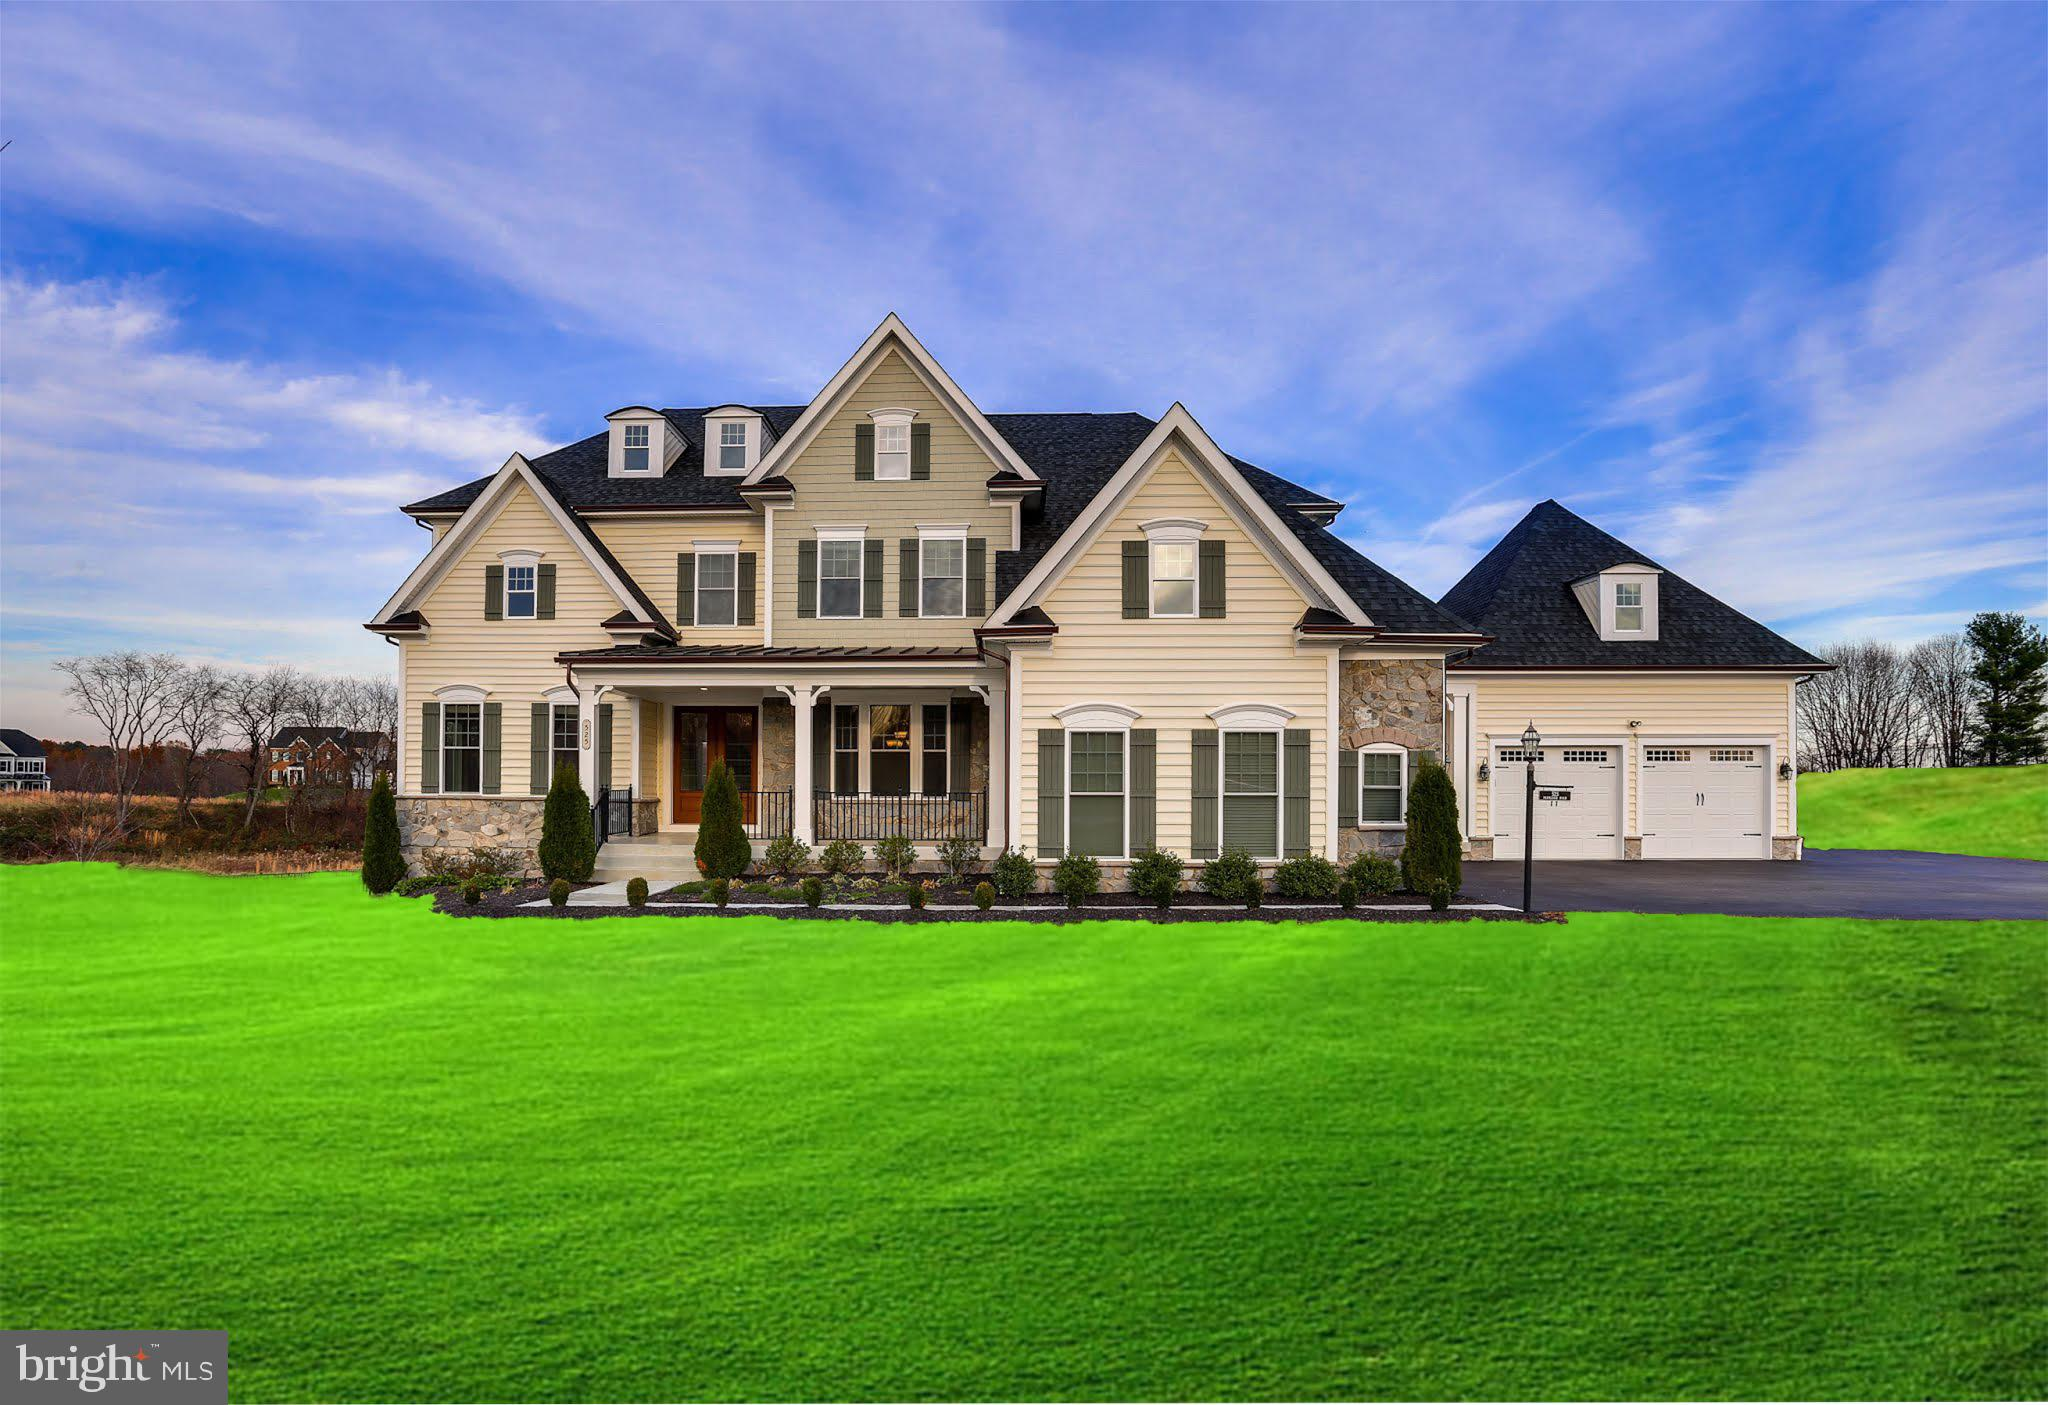 Impressive estate nestled on two acres of land featuring 5 bedrooms, 4 full and 2 half bathrooms. Th